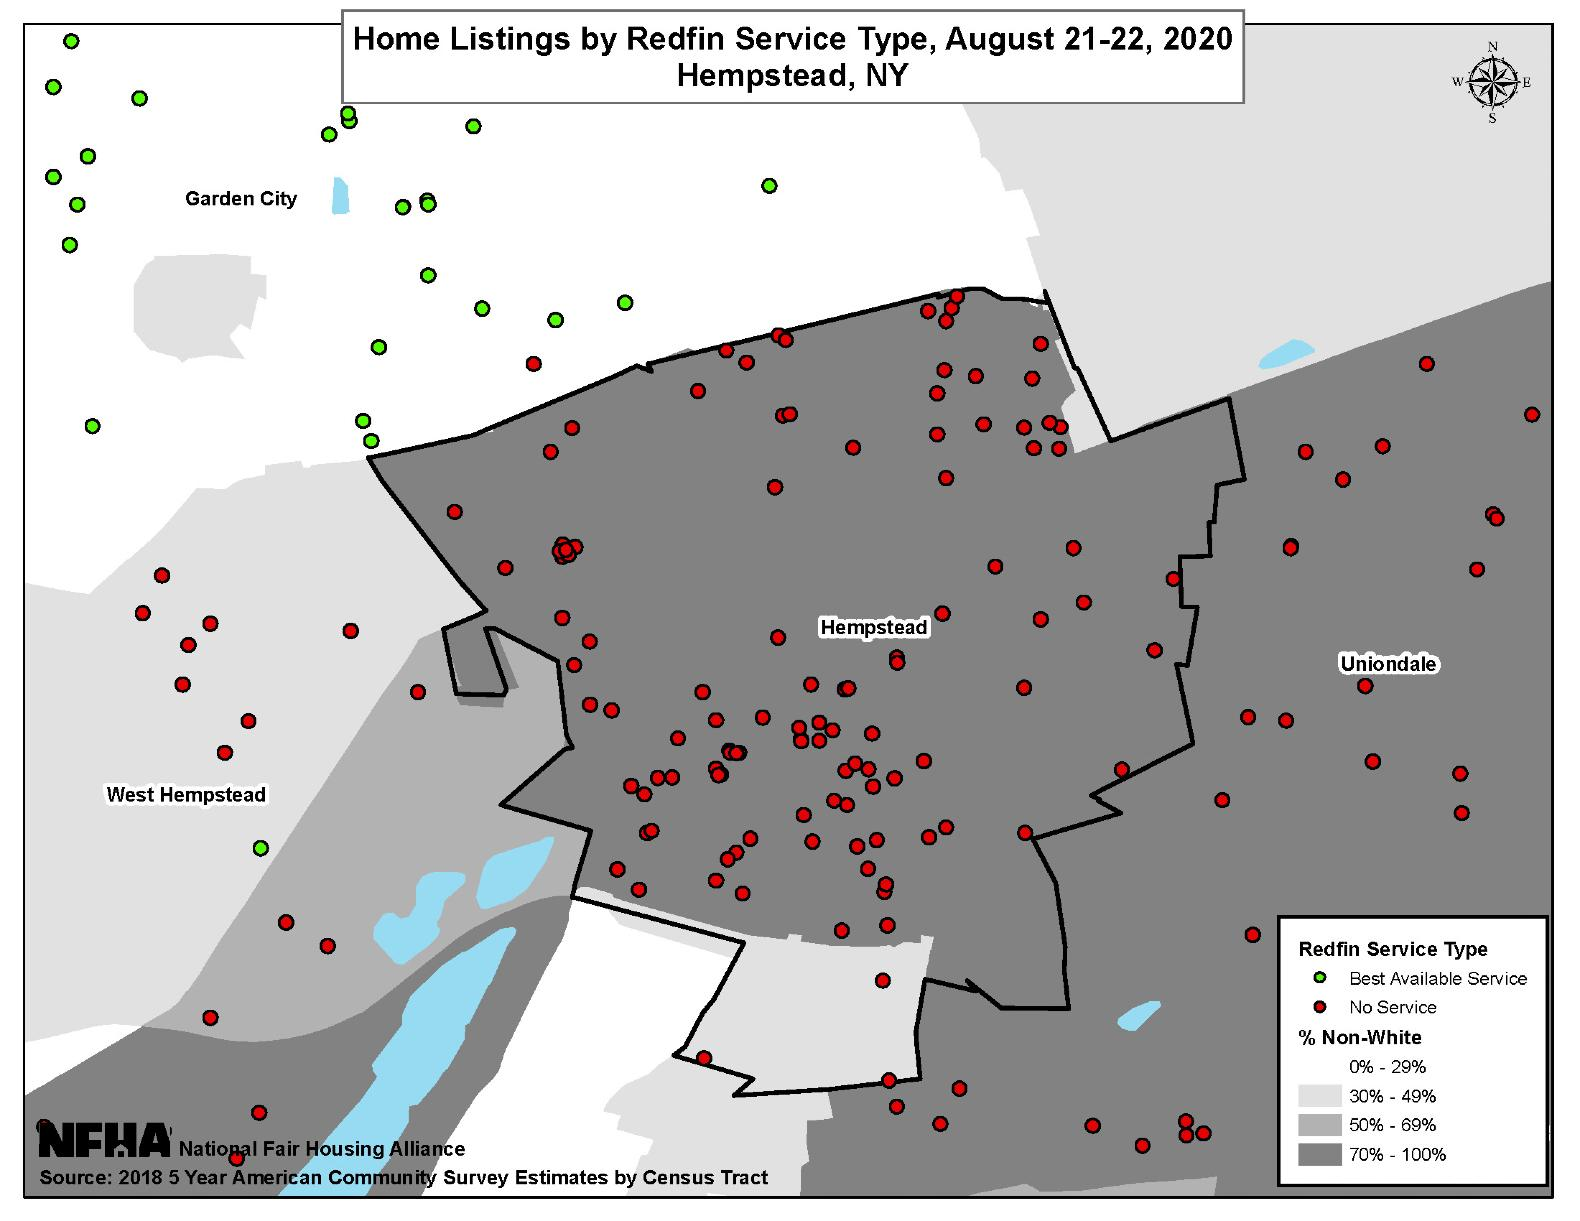 Home Listings by Redfin Service Type, Hempsted, NY August 21-22, 2020